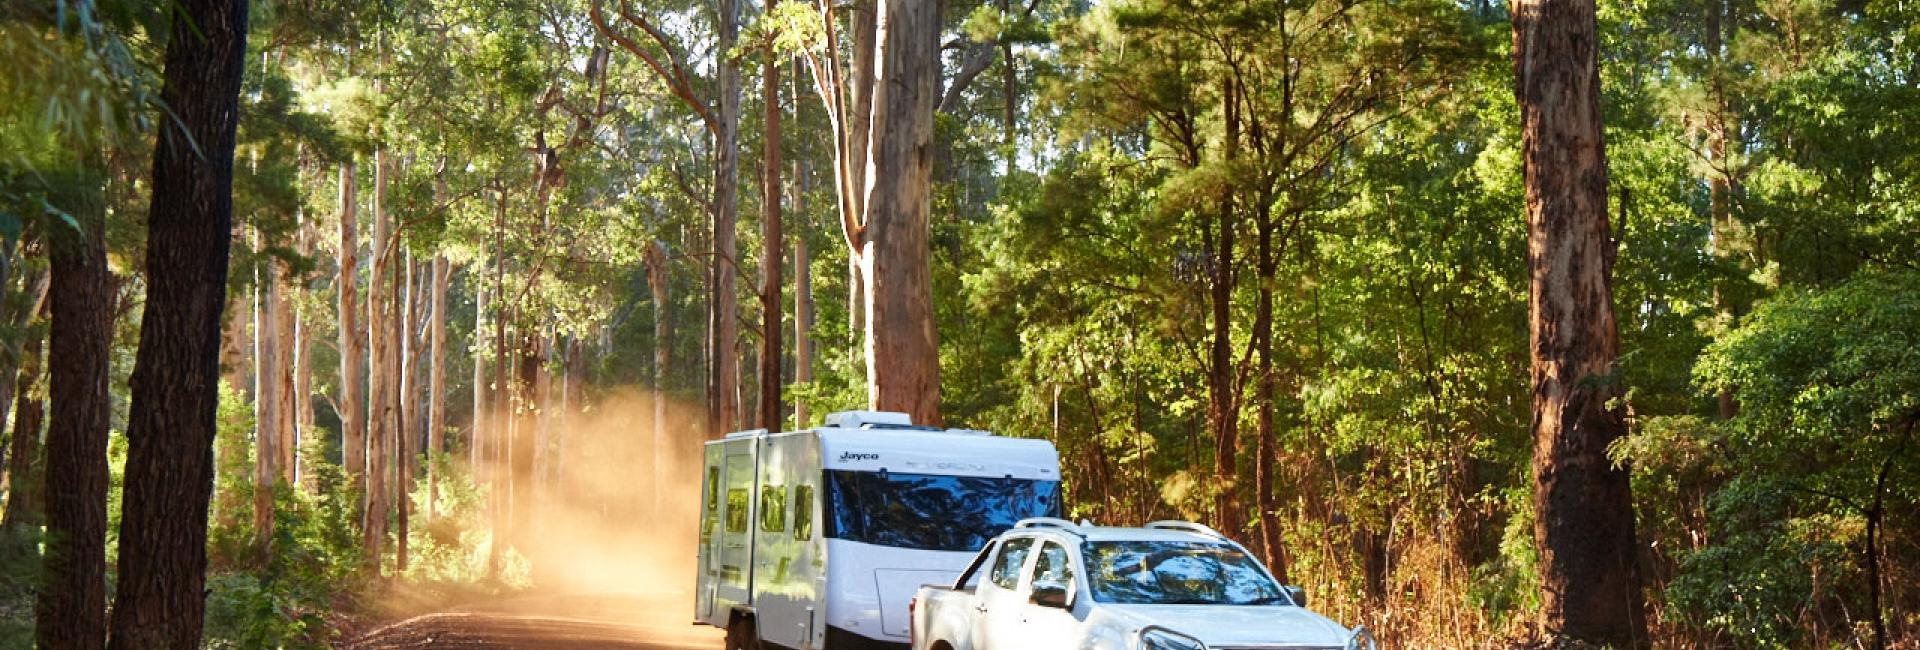 Car tows motorhome on gravel road in forest in Australias South West